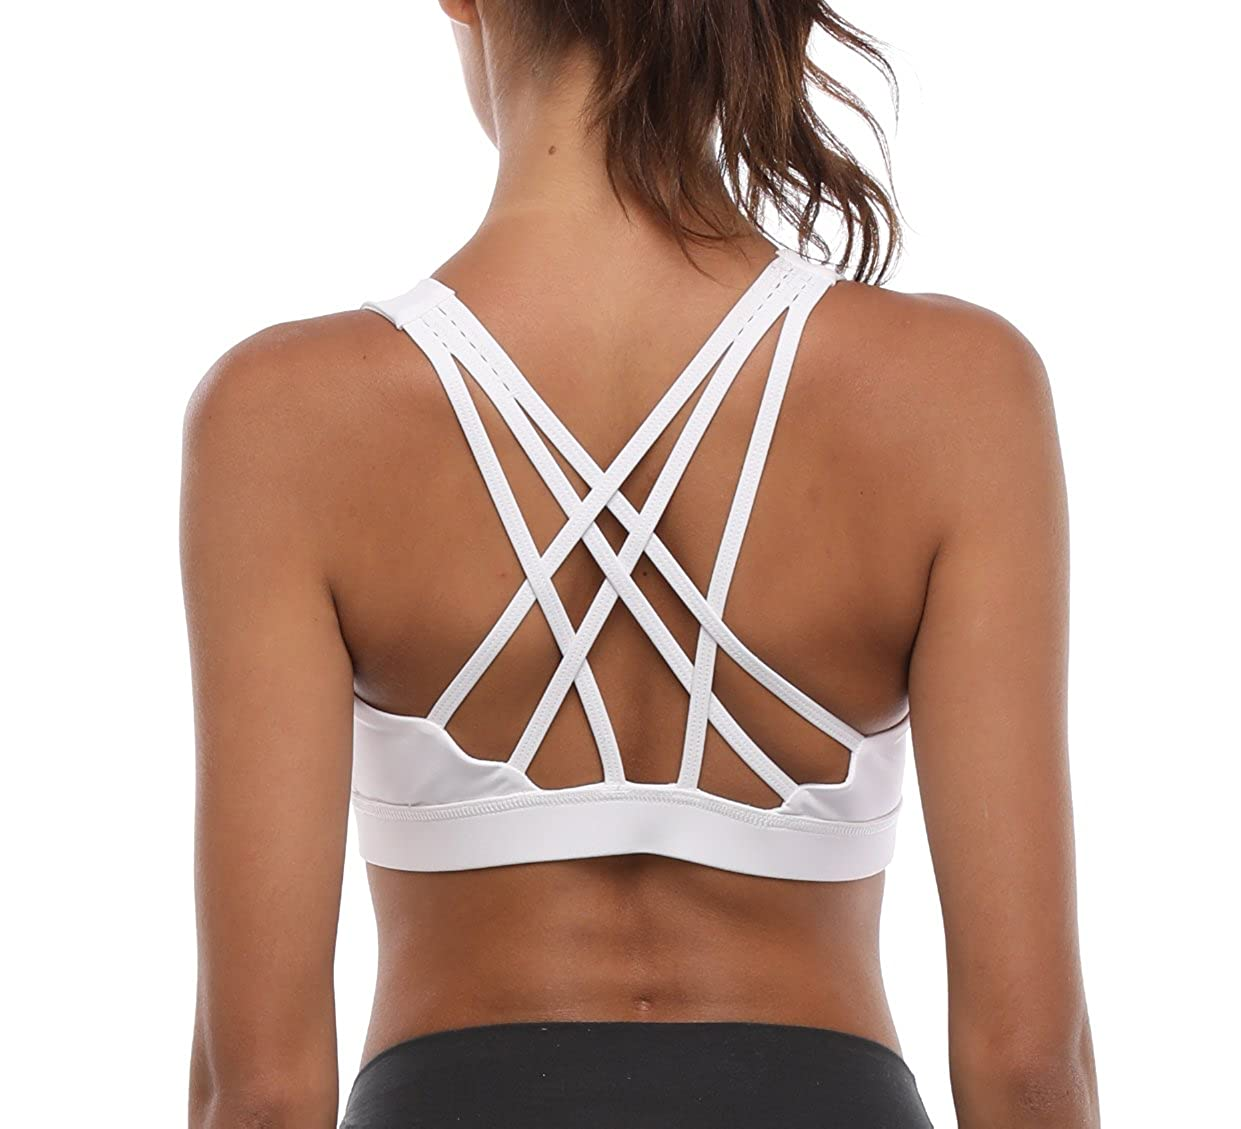 Zida Women's Sports Bra Strappy Activewear Workout Yoga Sport Bra